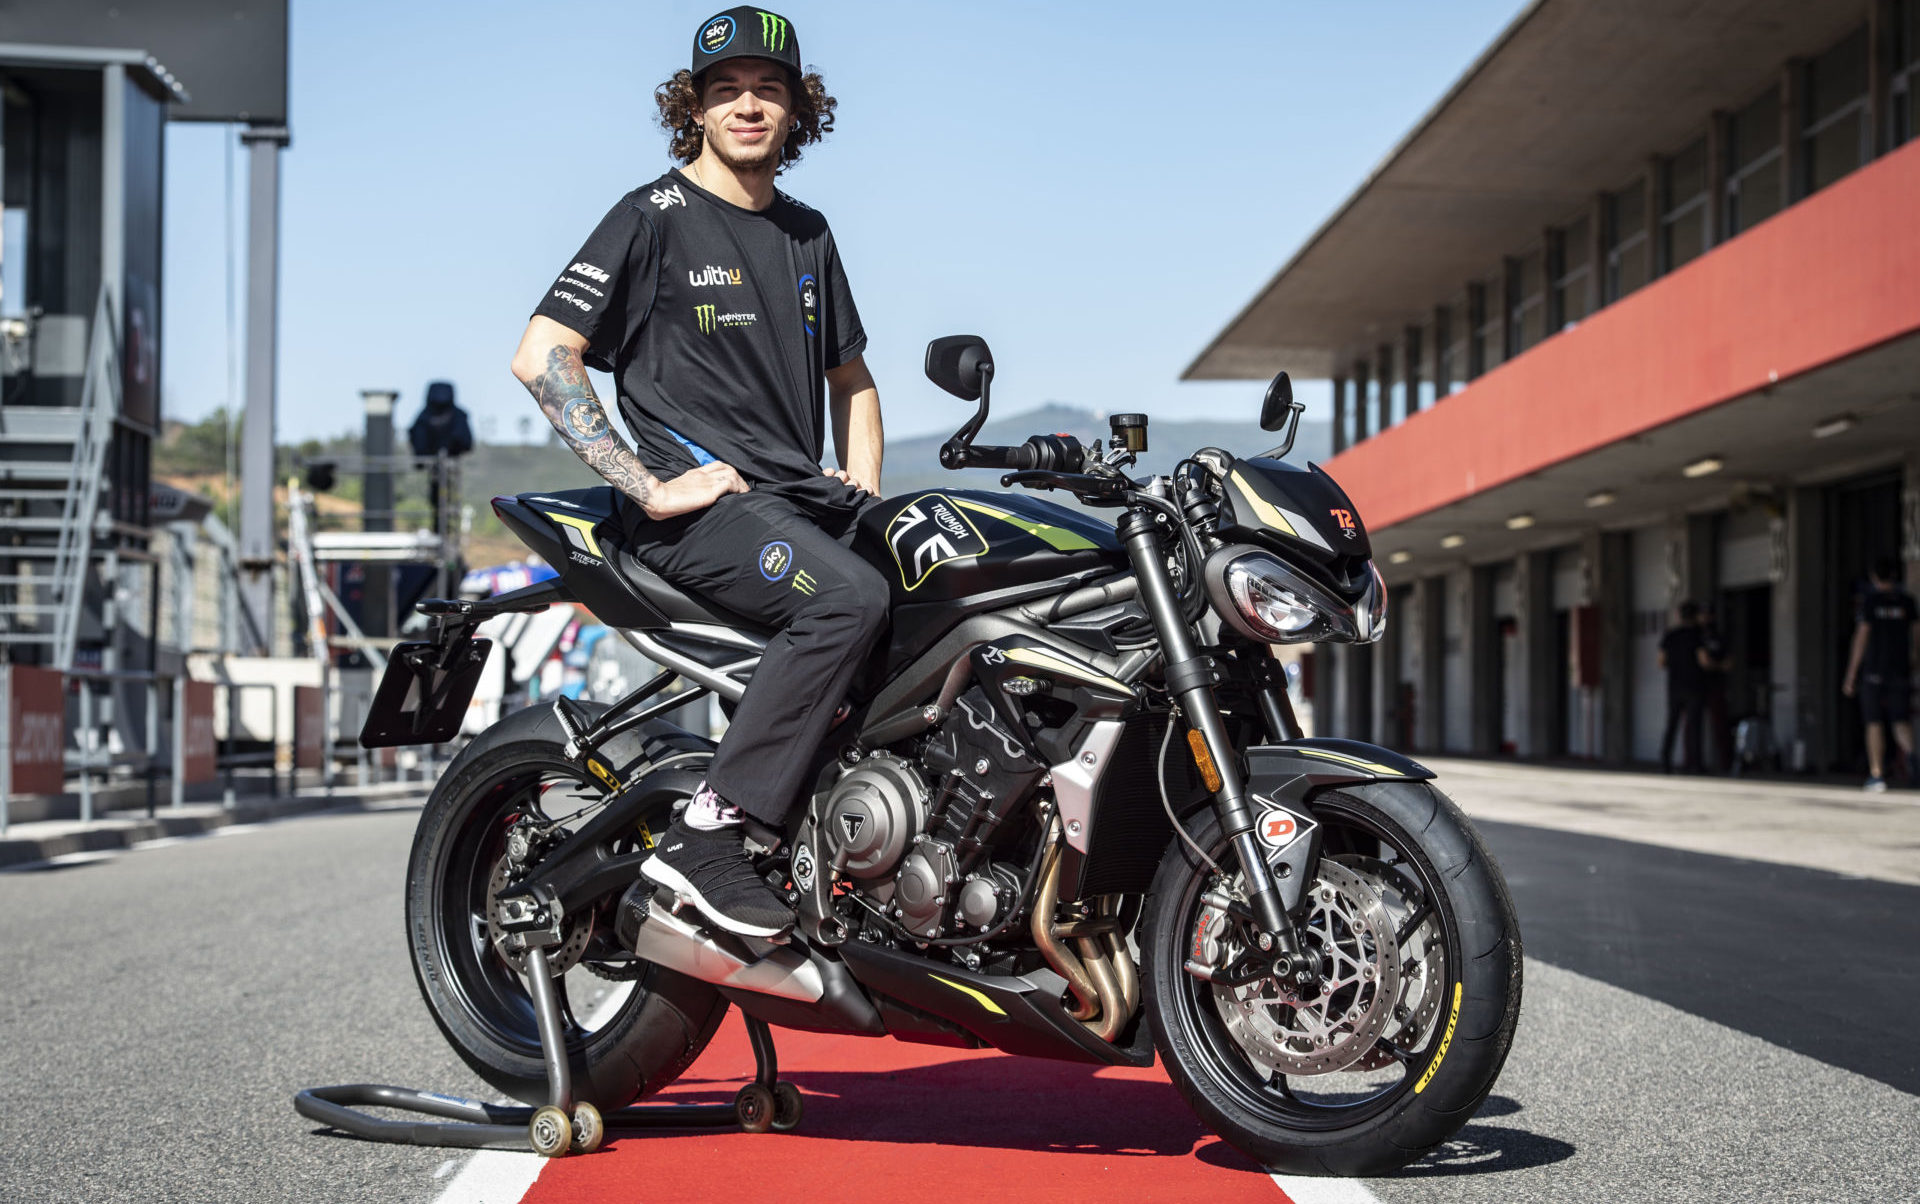 Marco Bezzecchi and the Triumph Street Triple RS that he earned for winning the Triumph Triple Trophy contest. Photo courtesy Triumph.